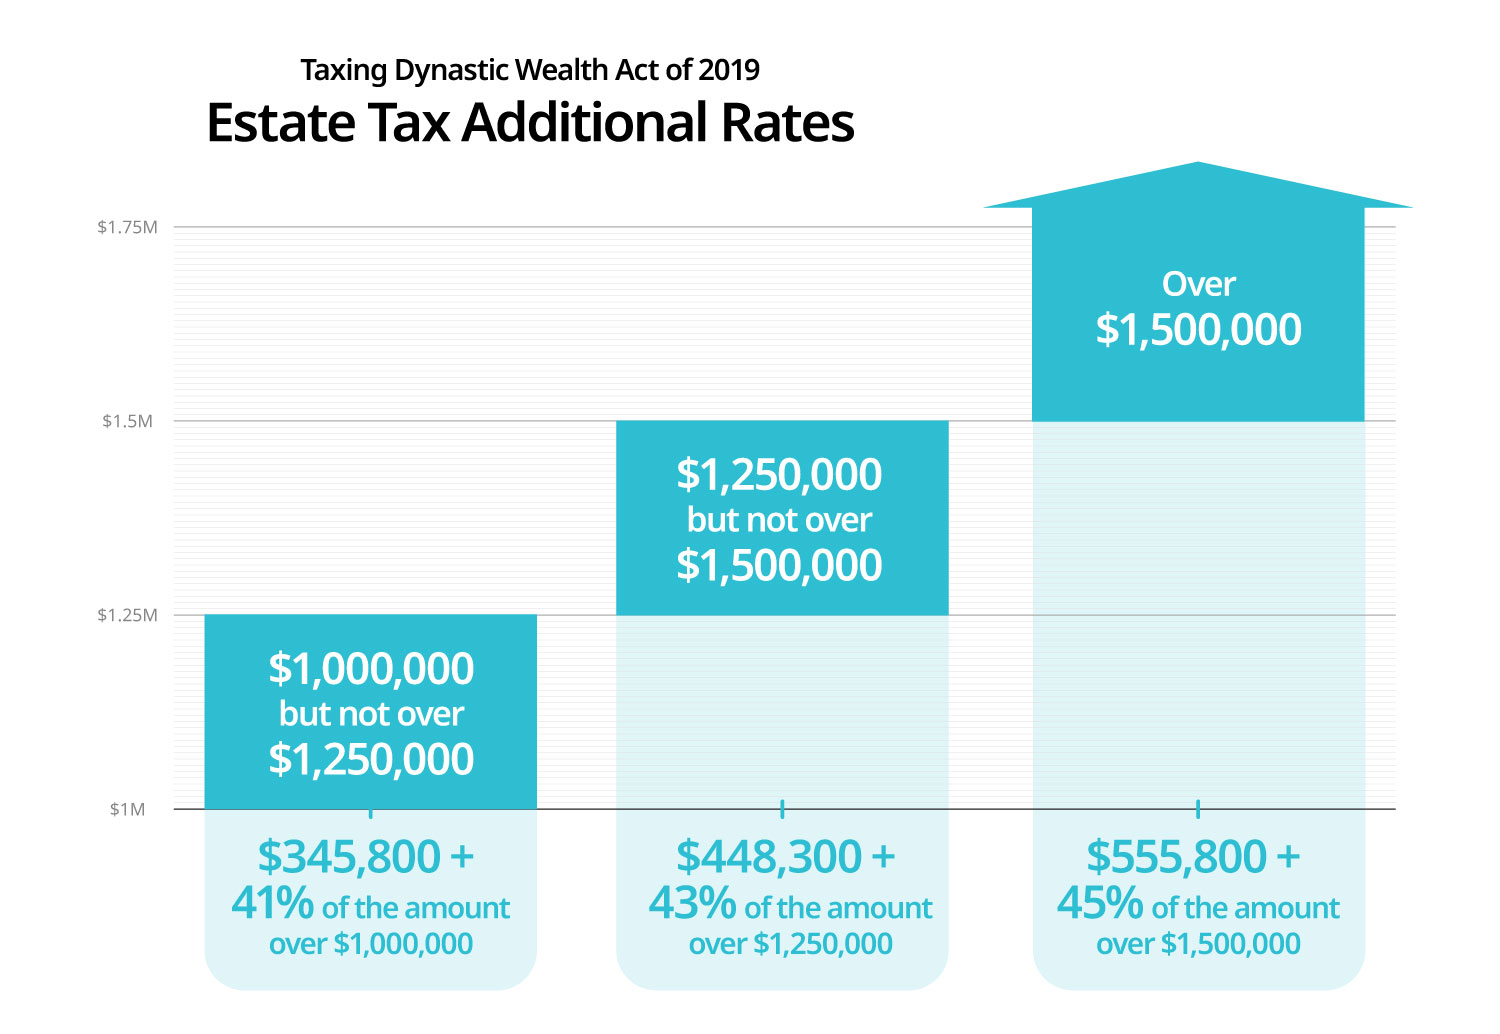 Estate Tax Additional Rates